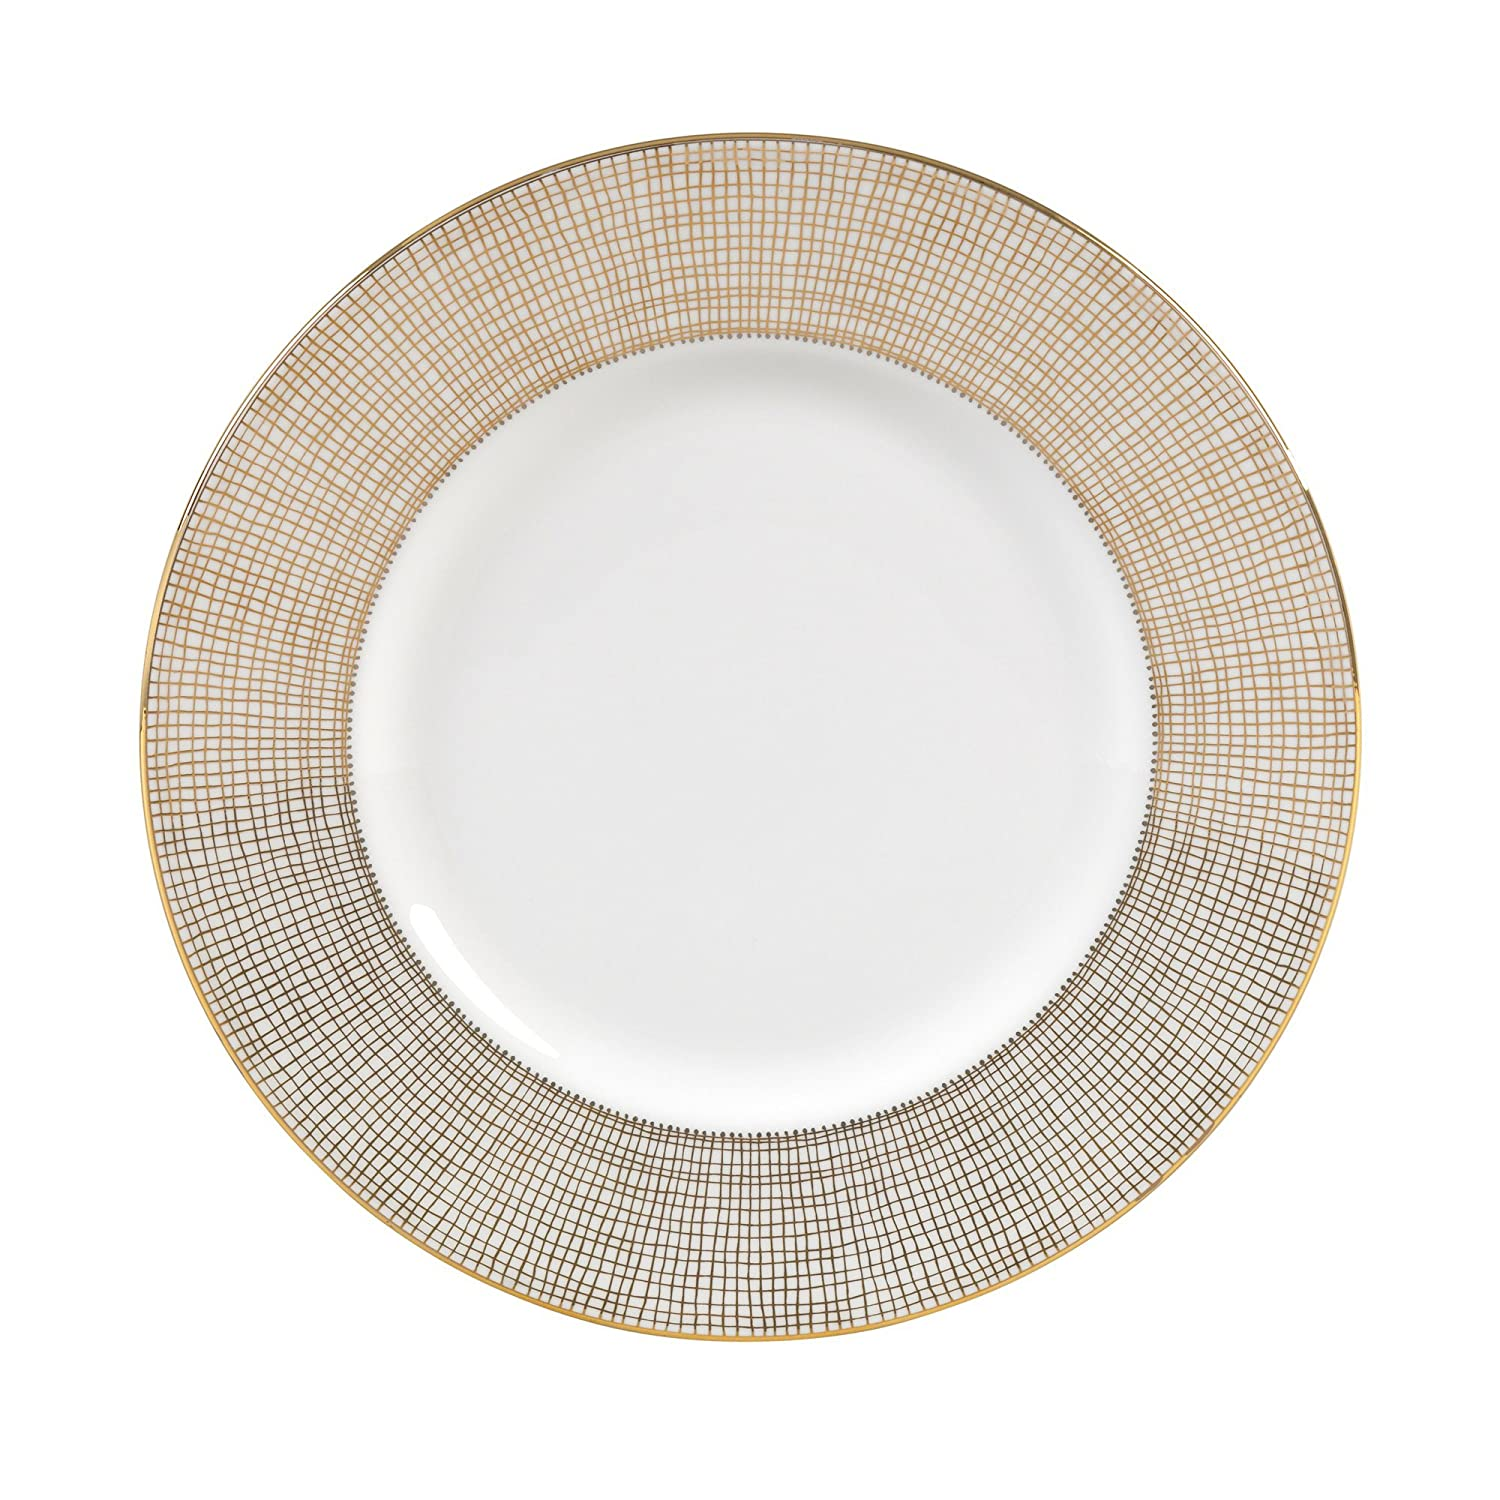 """Wedgwood Gilded Weave Rim Soup Plate, 9"""", White 9"""" 5C101201005"""